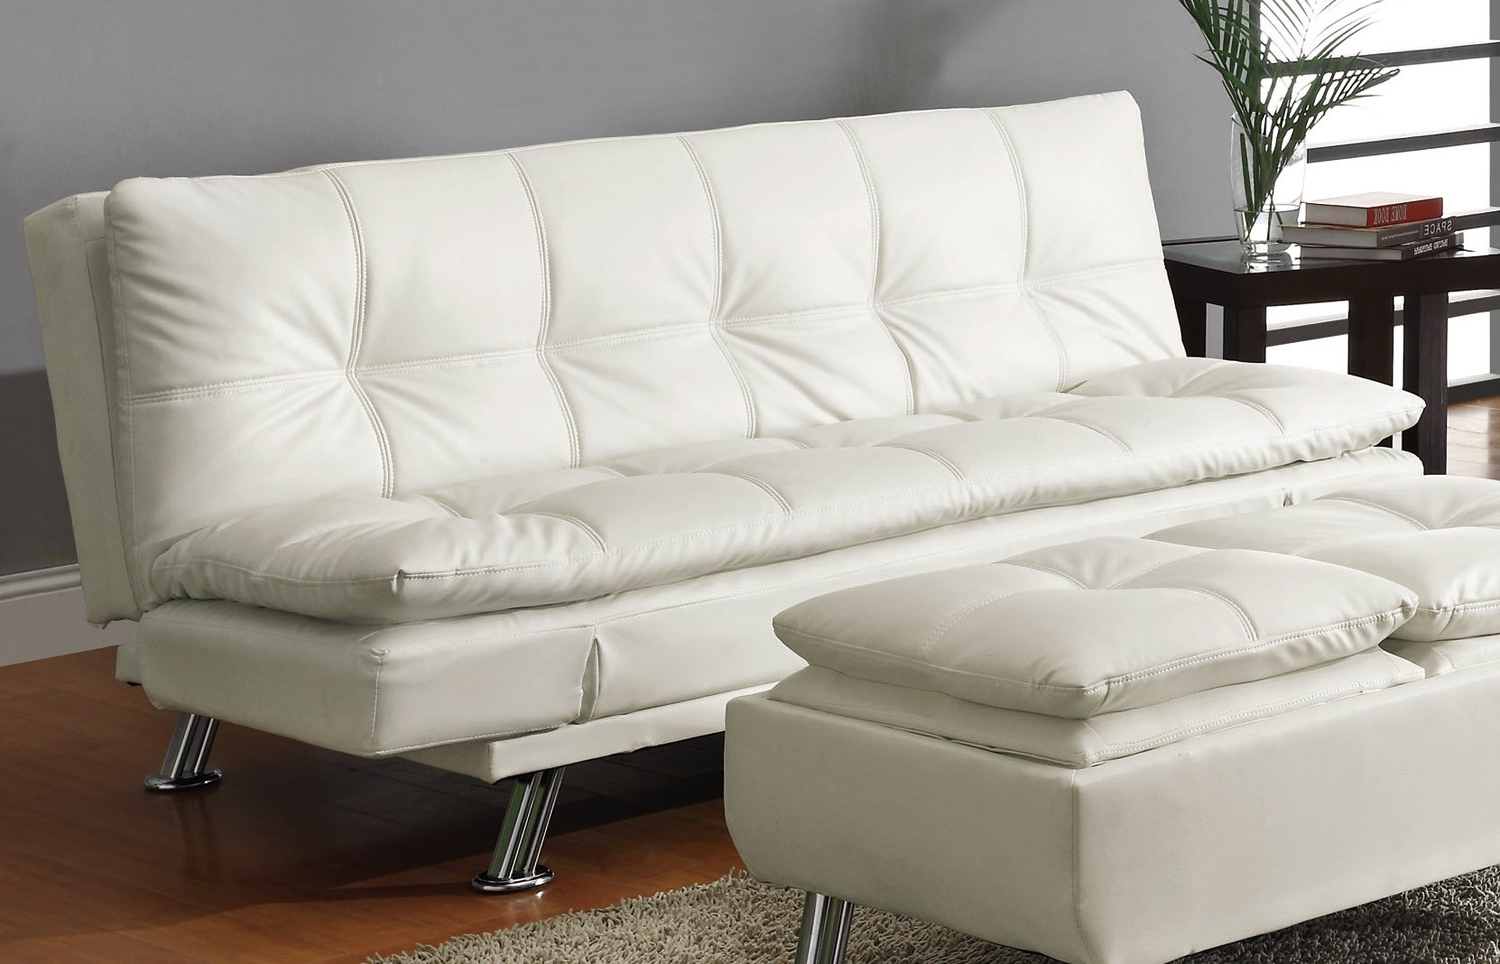 Comfortable Sofas And Chairs Within Most Up To Date Most Comfortable Sleeper Sofa 2015 Lazy Boy Sleeper Sofa La Z Boy (View 6 of 15)